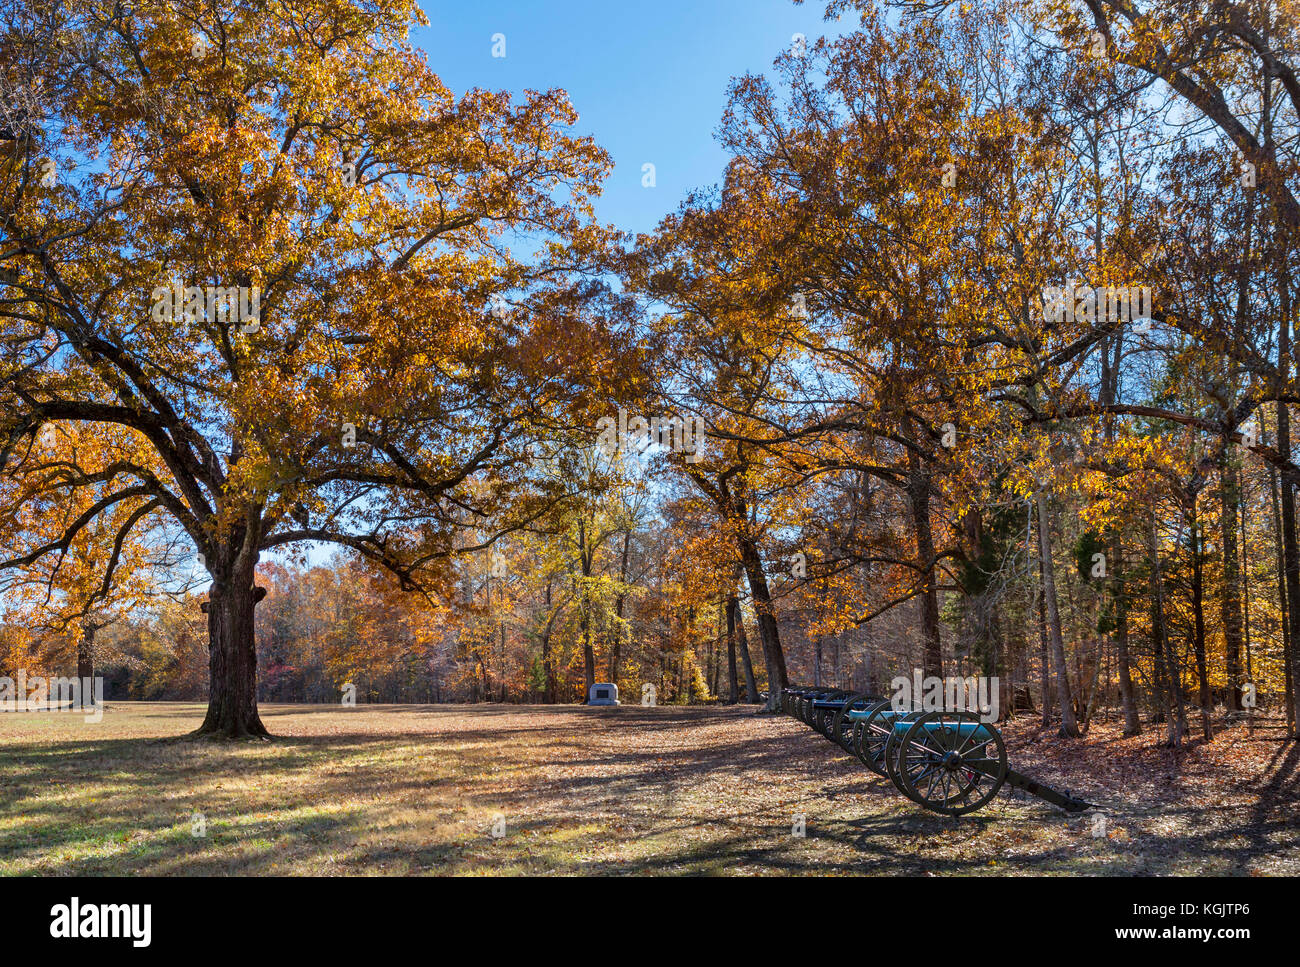 Ruggles Battery, Shiloh National Military Park, Tennessee, USA. - Stock Image